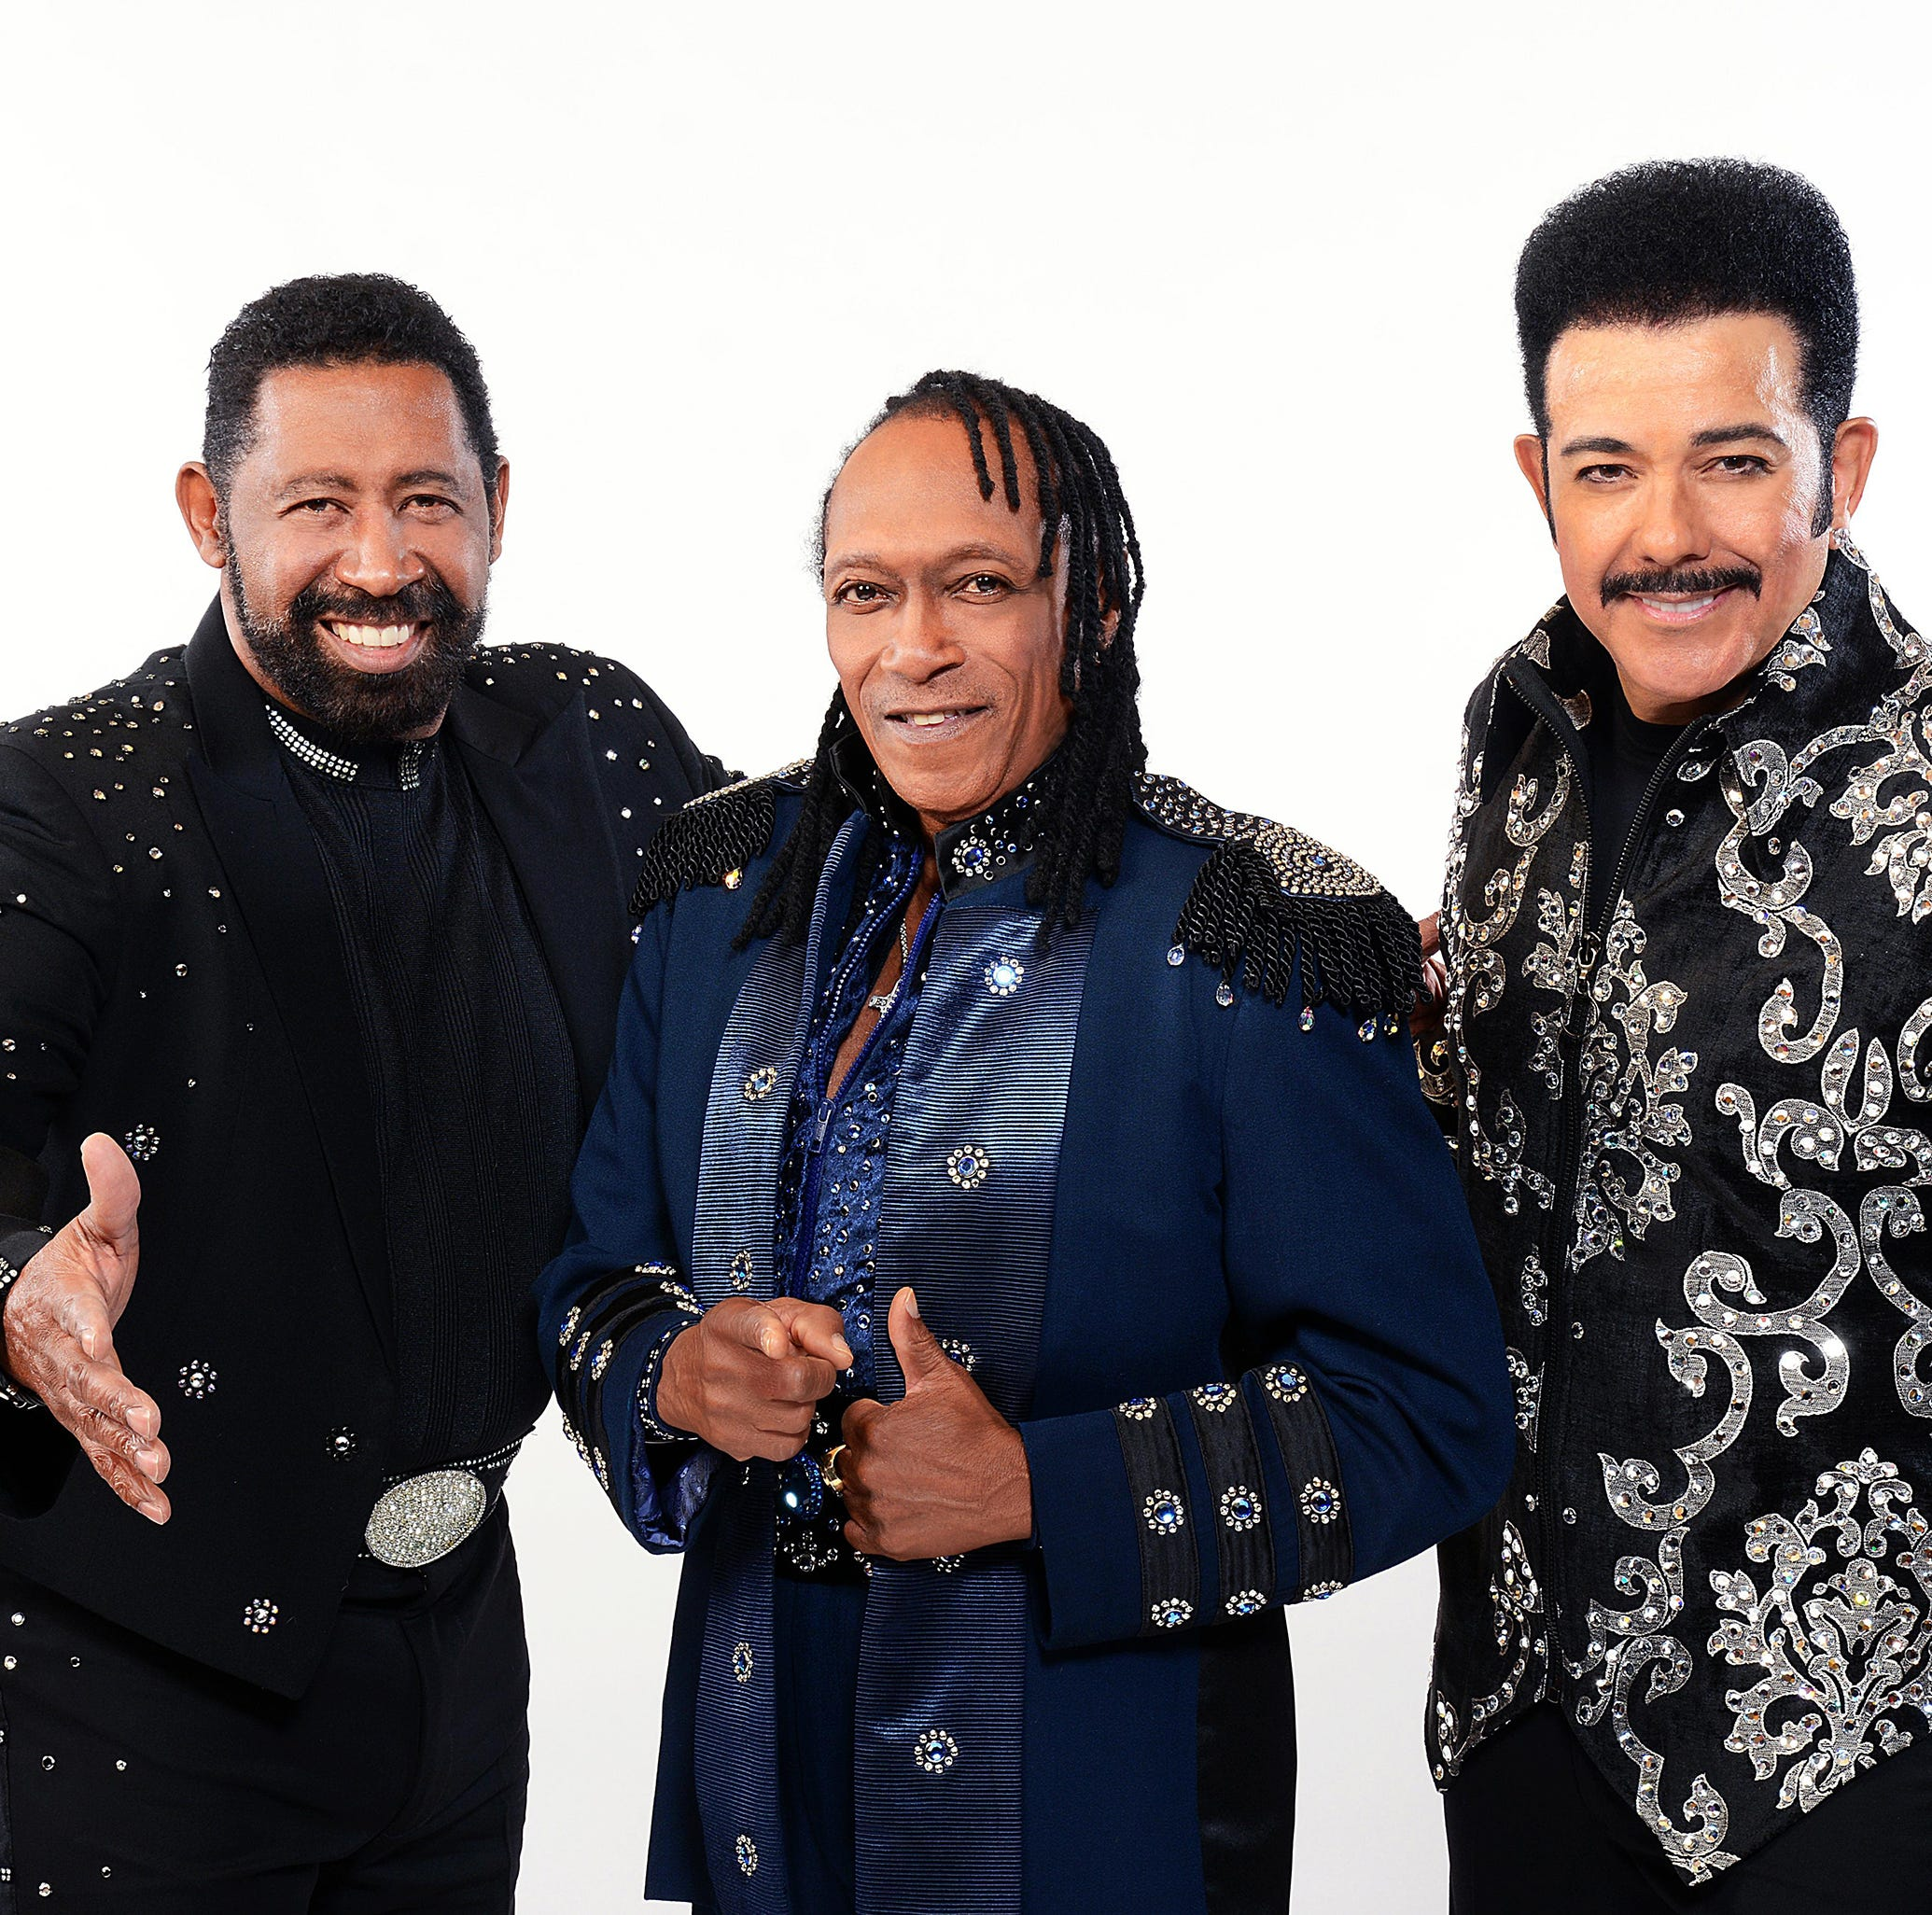 Q&A with William 'WAK' King: Commodores bringing biggest hits back to the area that inspired them